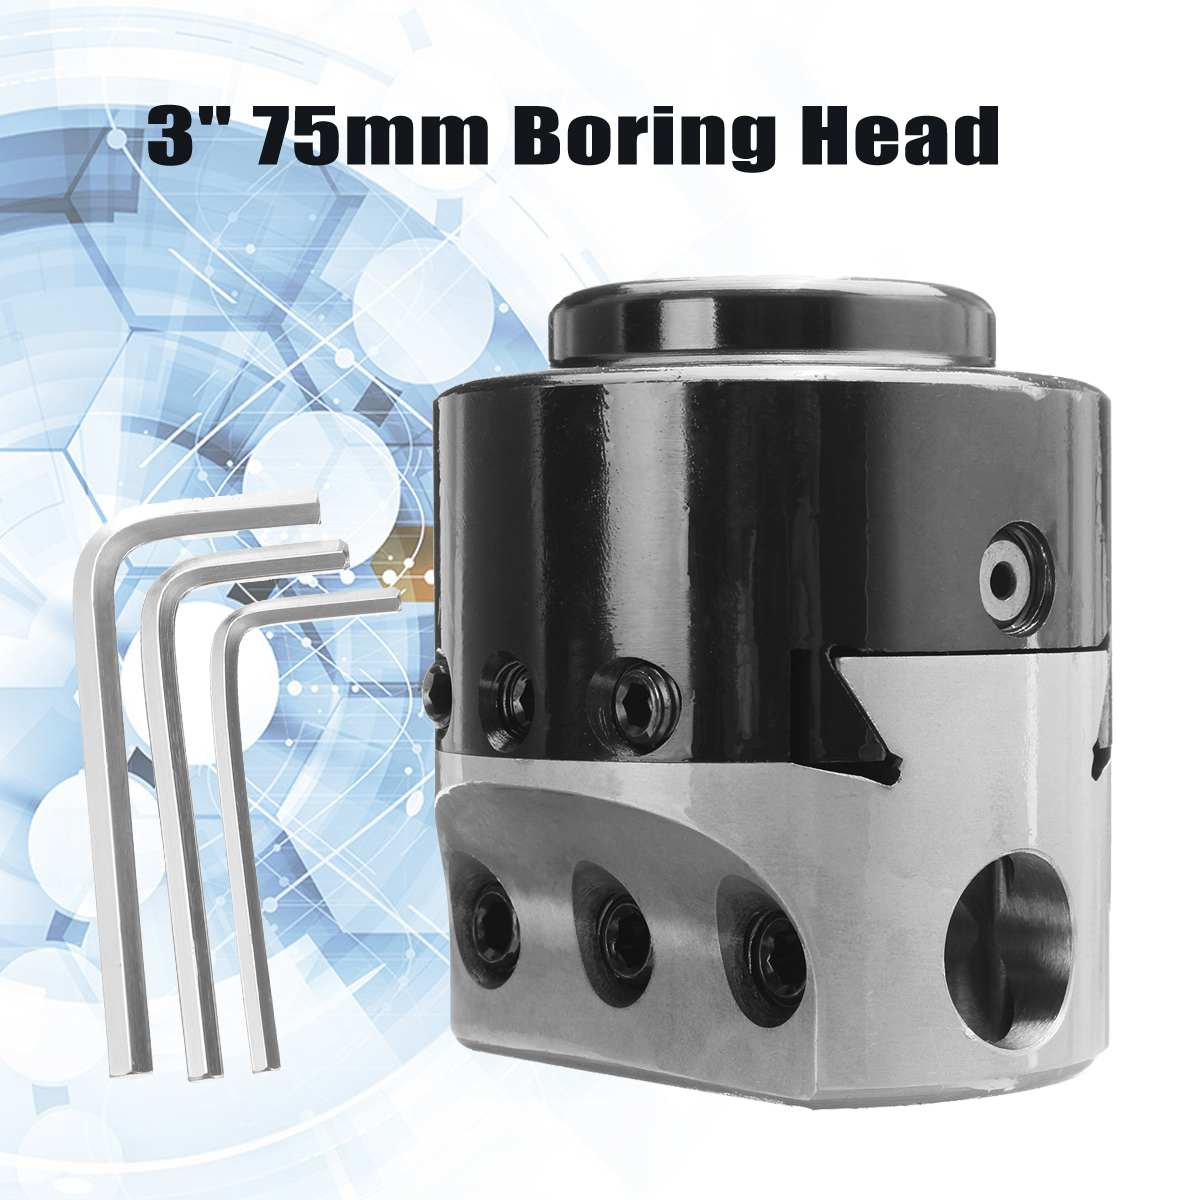 3'' 75mm Boring Head Lathe Milling Tool Holder +3 Wrench For 3/4'' Hole Boring Cut